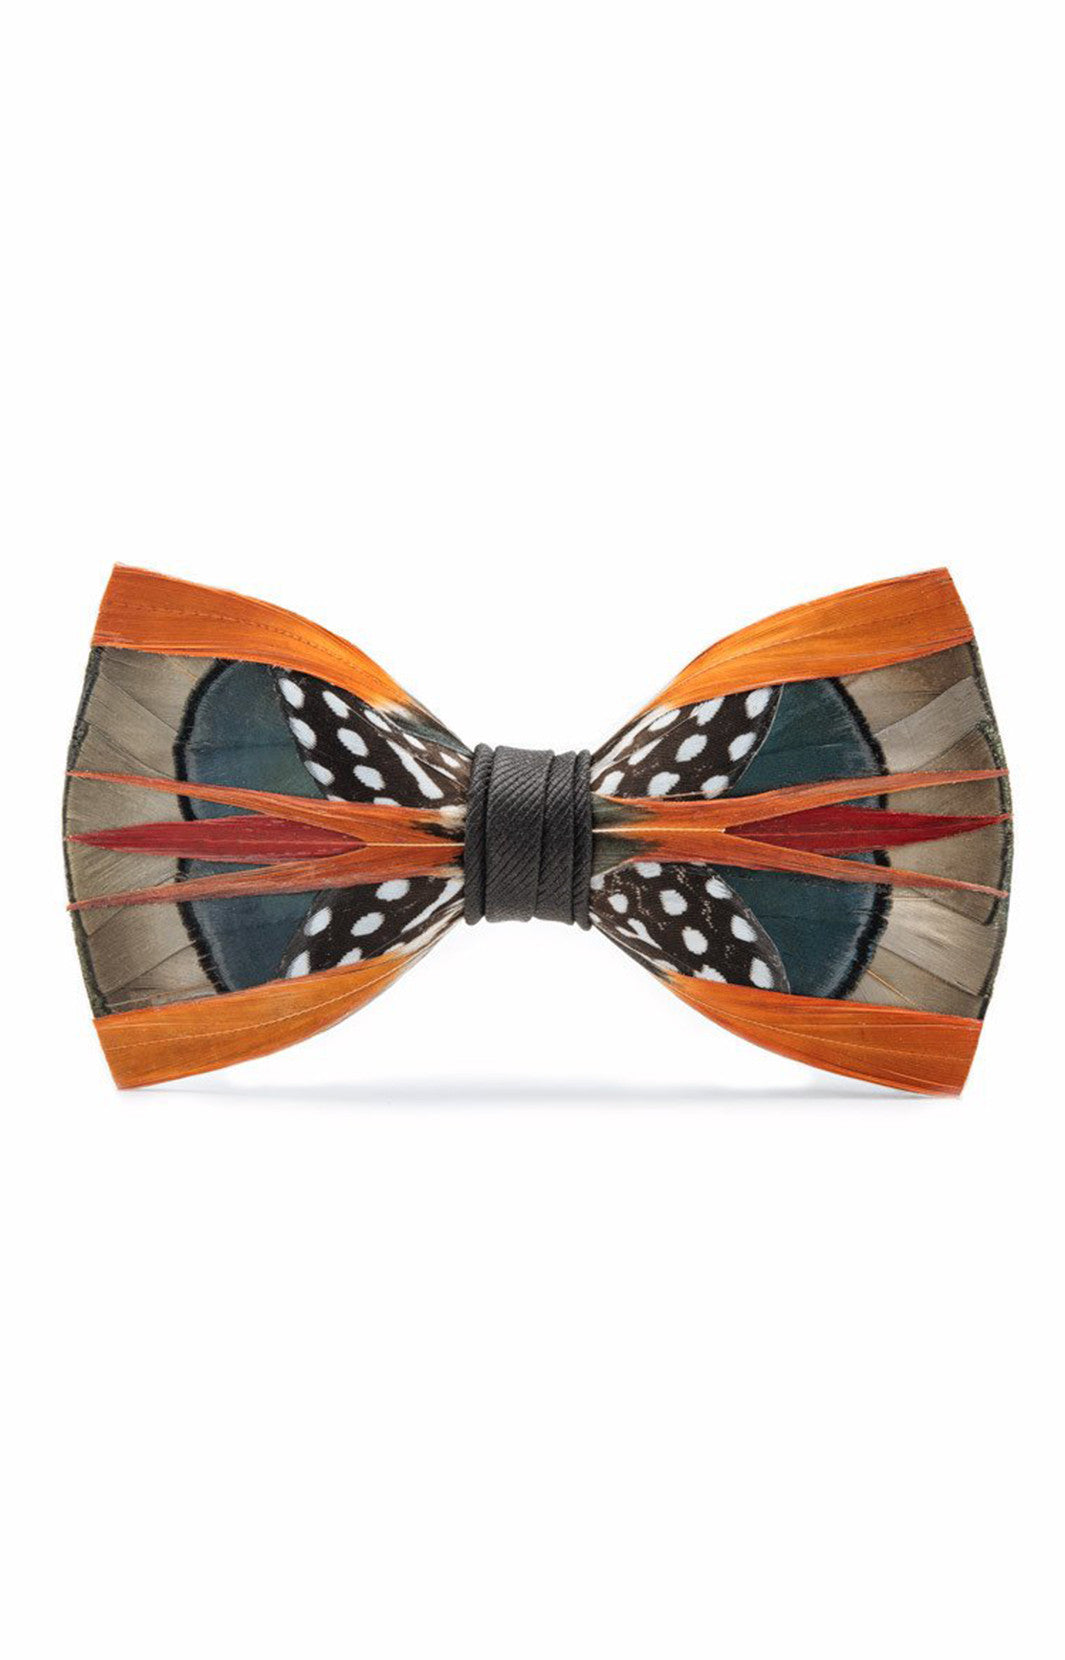 mens feather bow ties, brackish bow ties, orange feathers, formal bow tie, formal attire, wedding bow tie